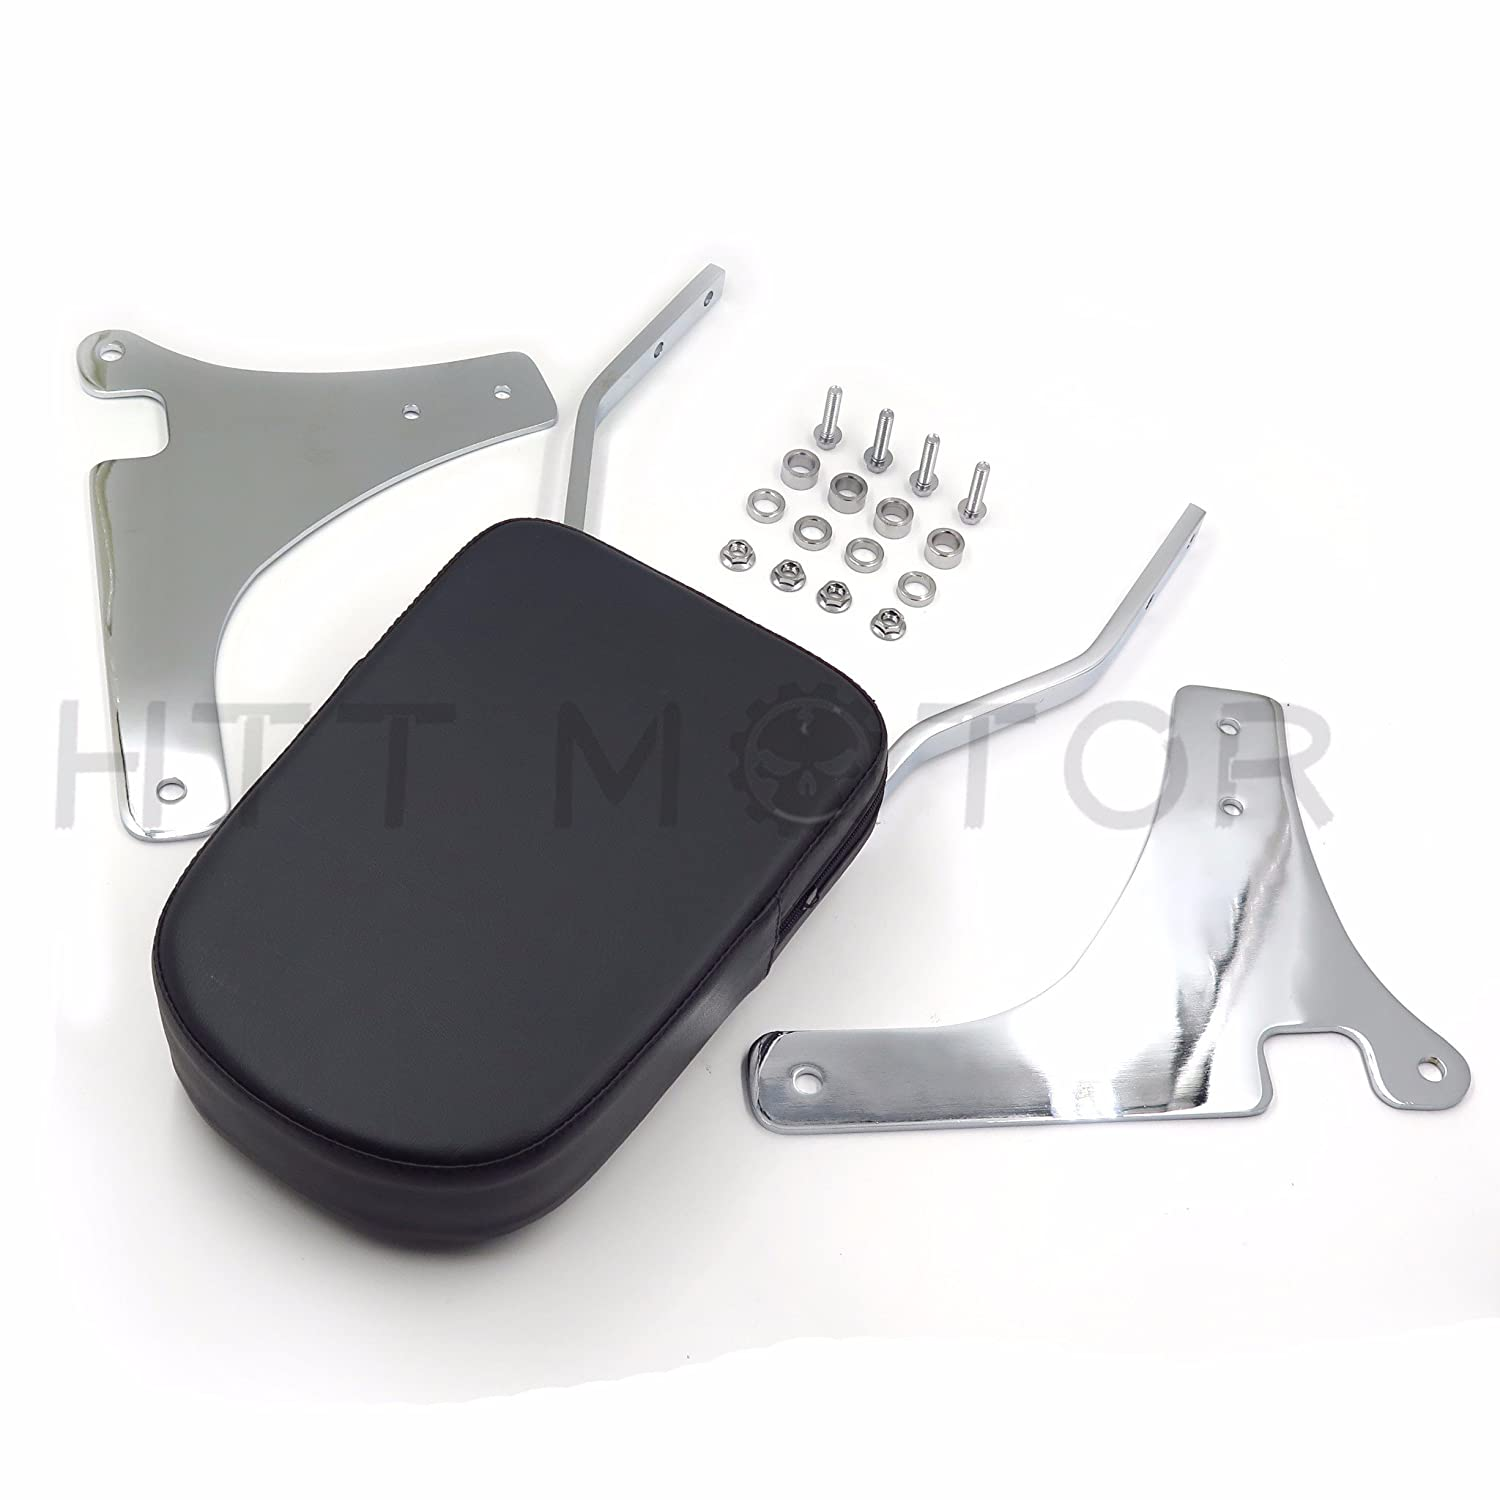 Chrome Skull Backrest Sissy Bar Leather Pad Compatible with Kawasaki Classic//VN800 96-05 US HTTMT MT136+SS001-SA